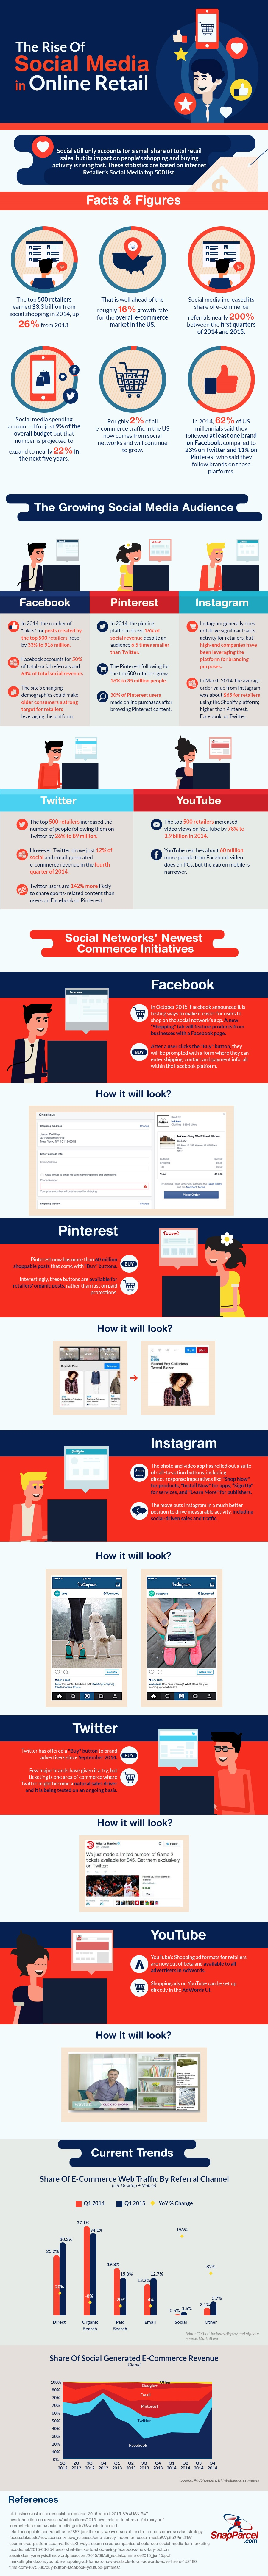 rise-of-social-media-in-online-retail-infographic